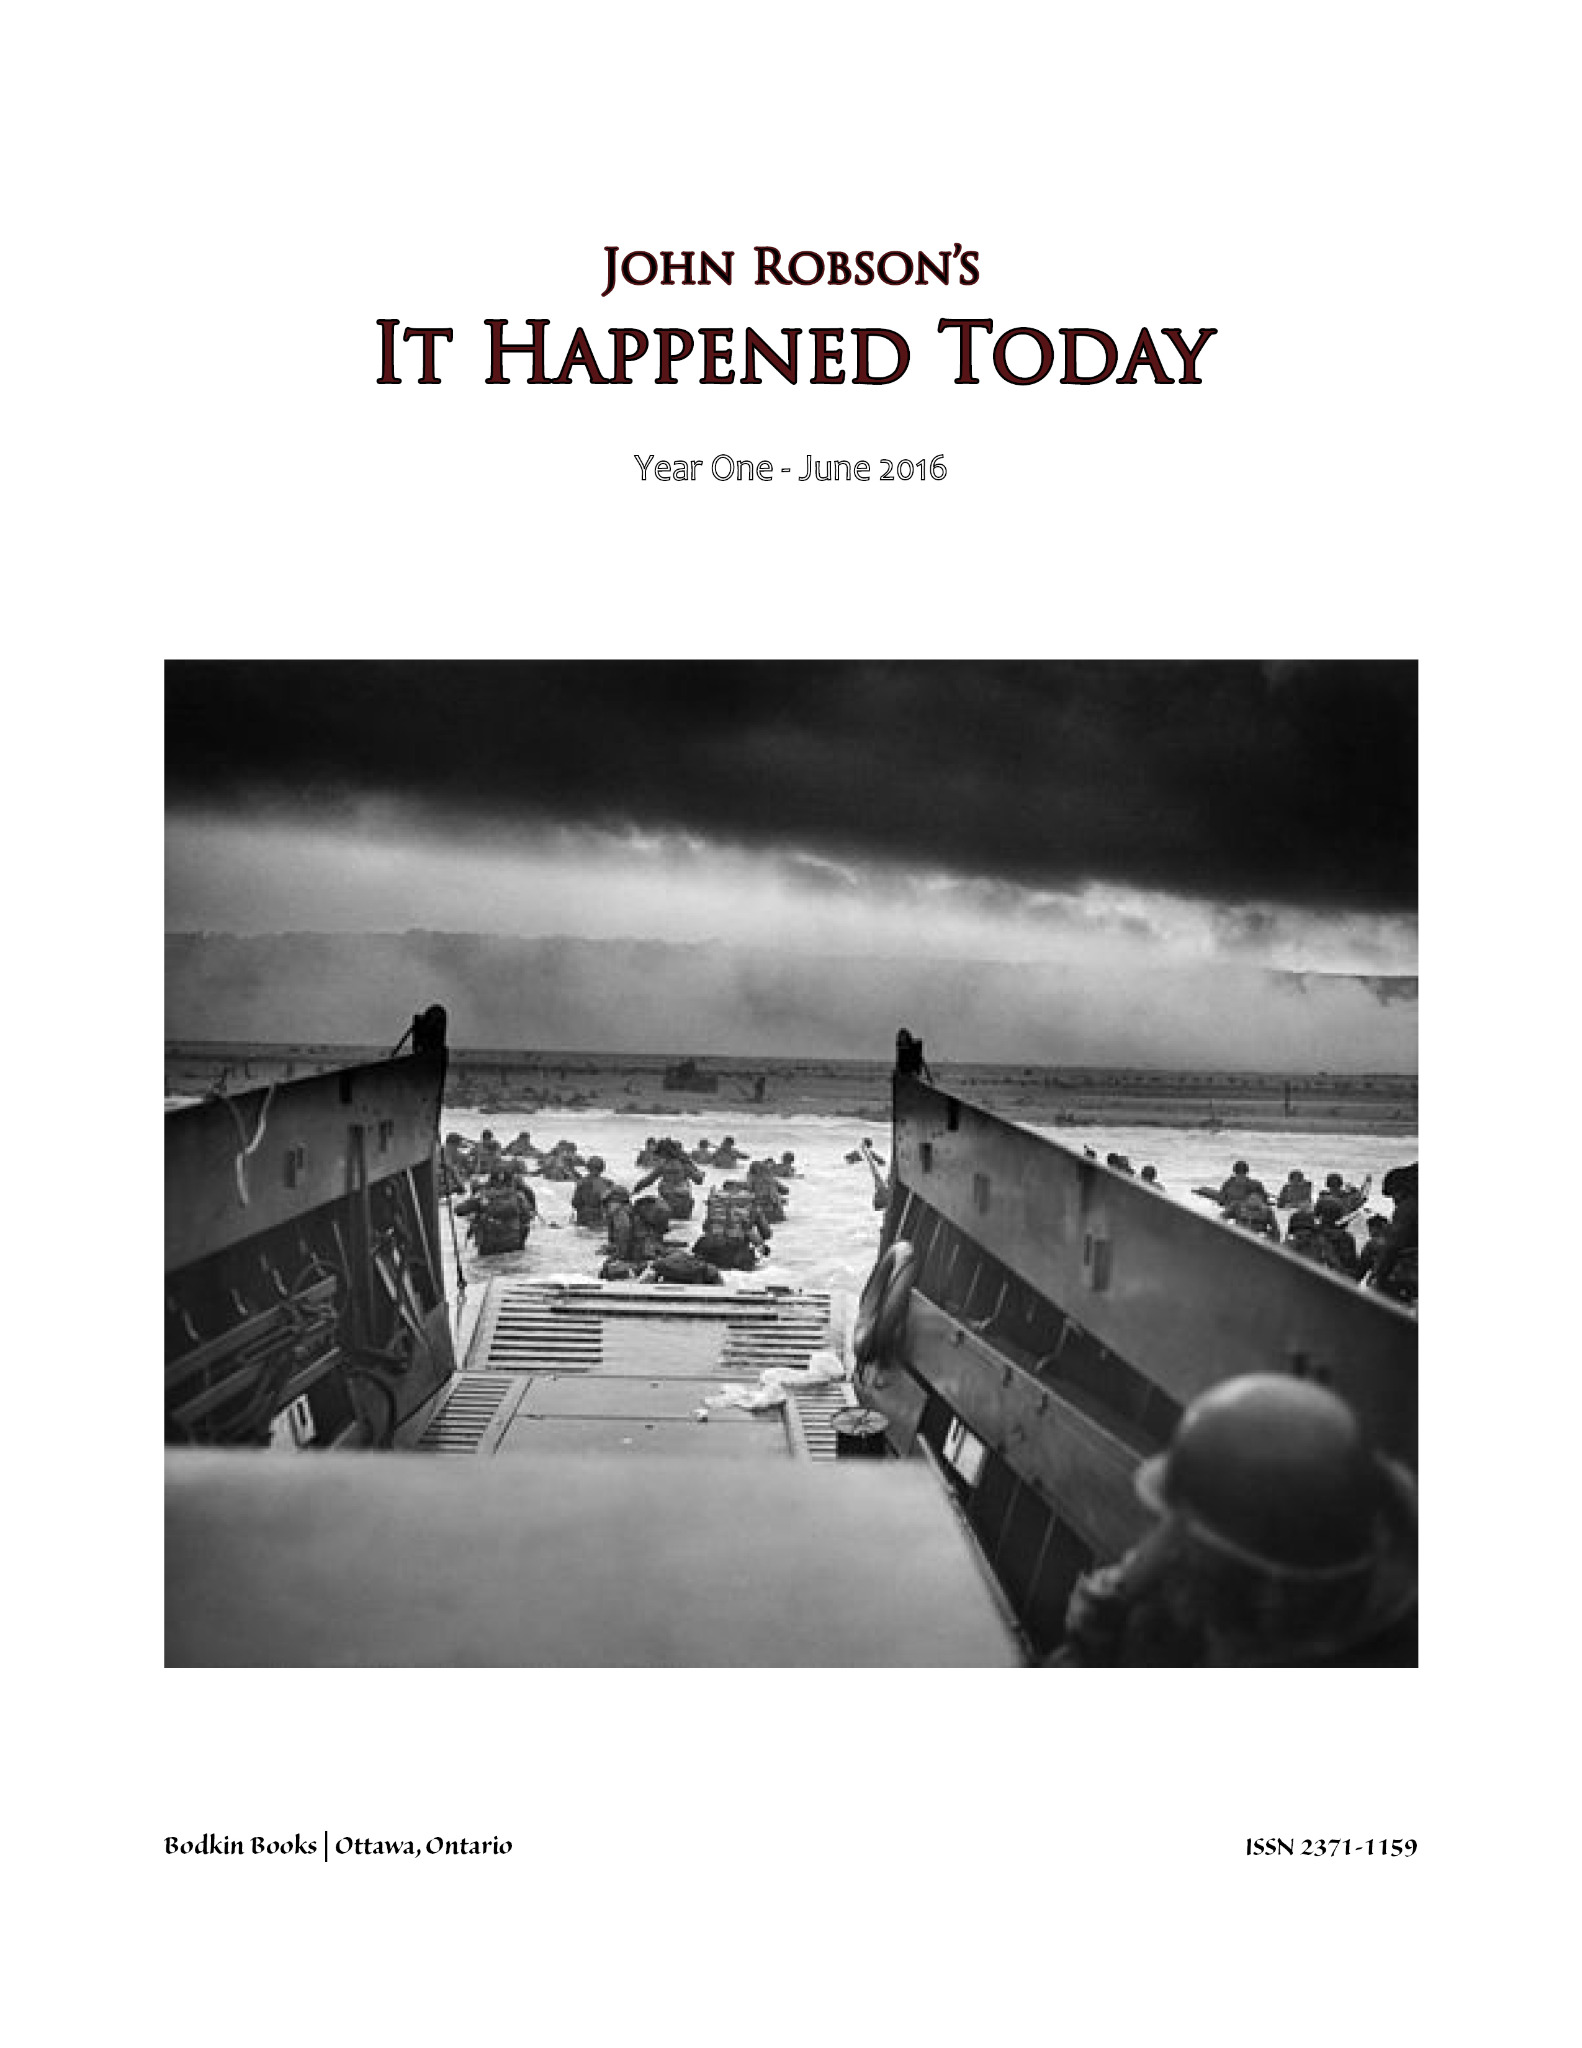 John Robson's It Happened Today - Year One - June